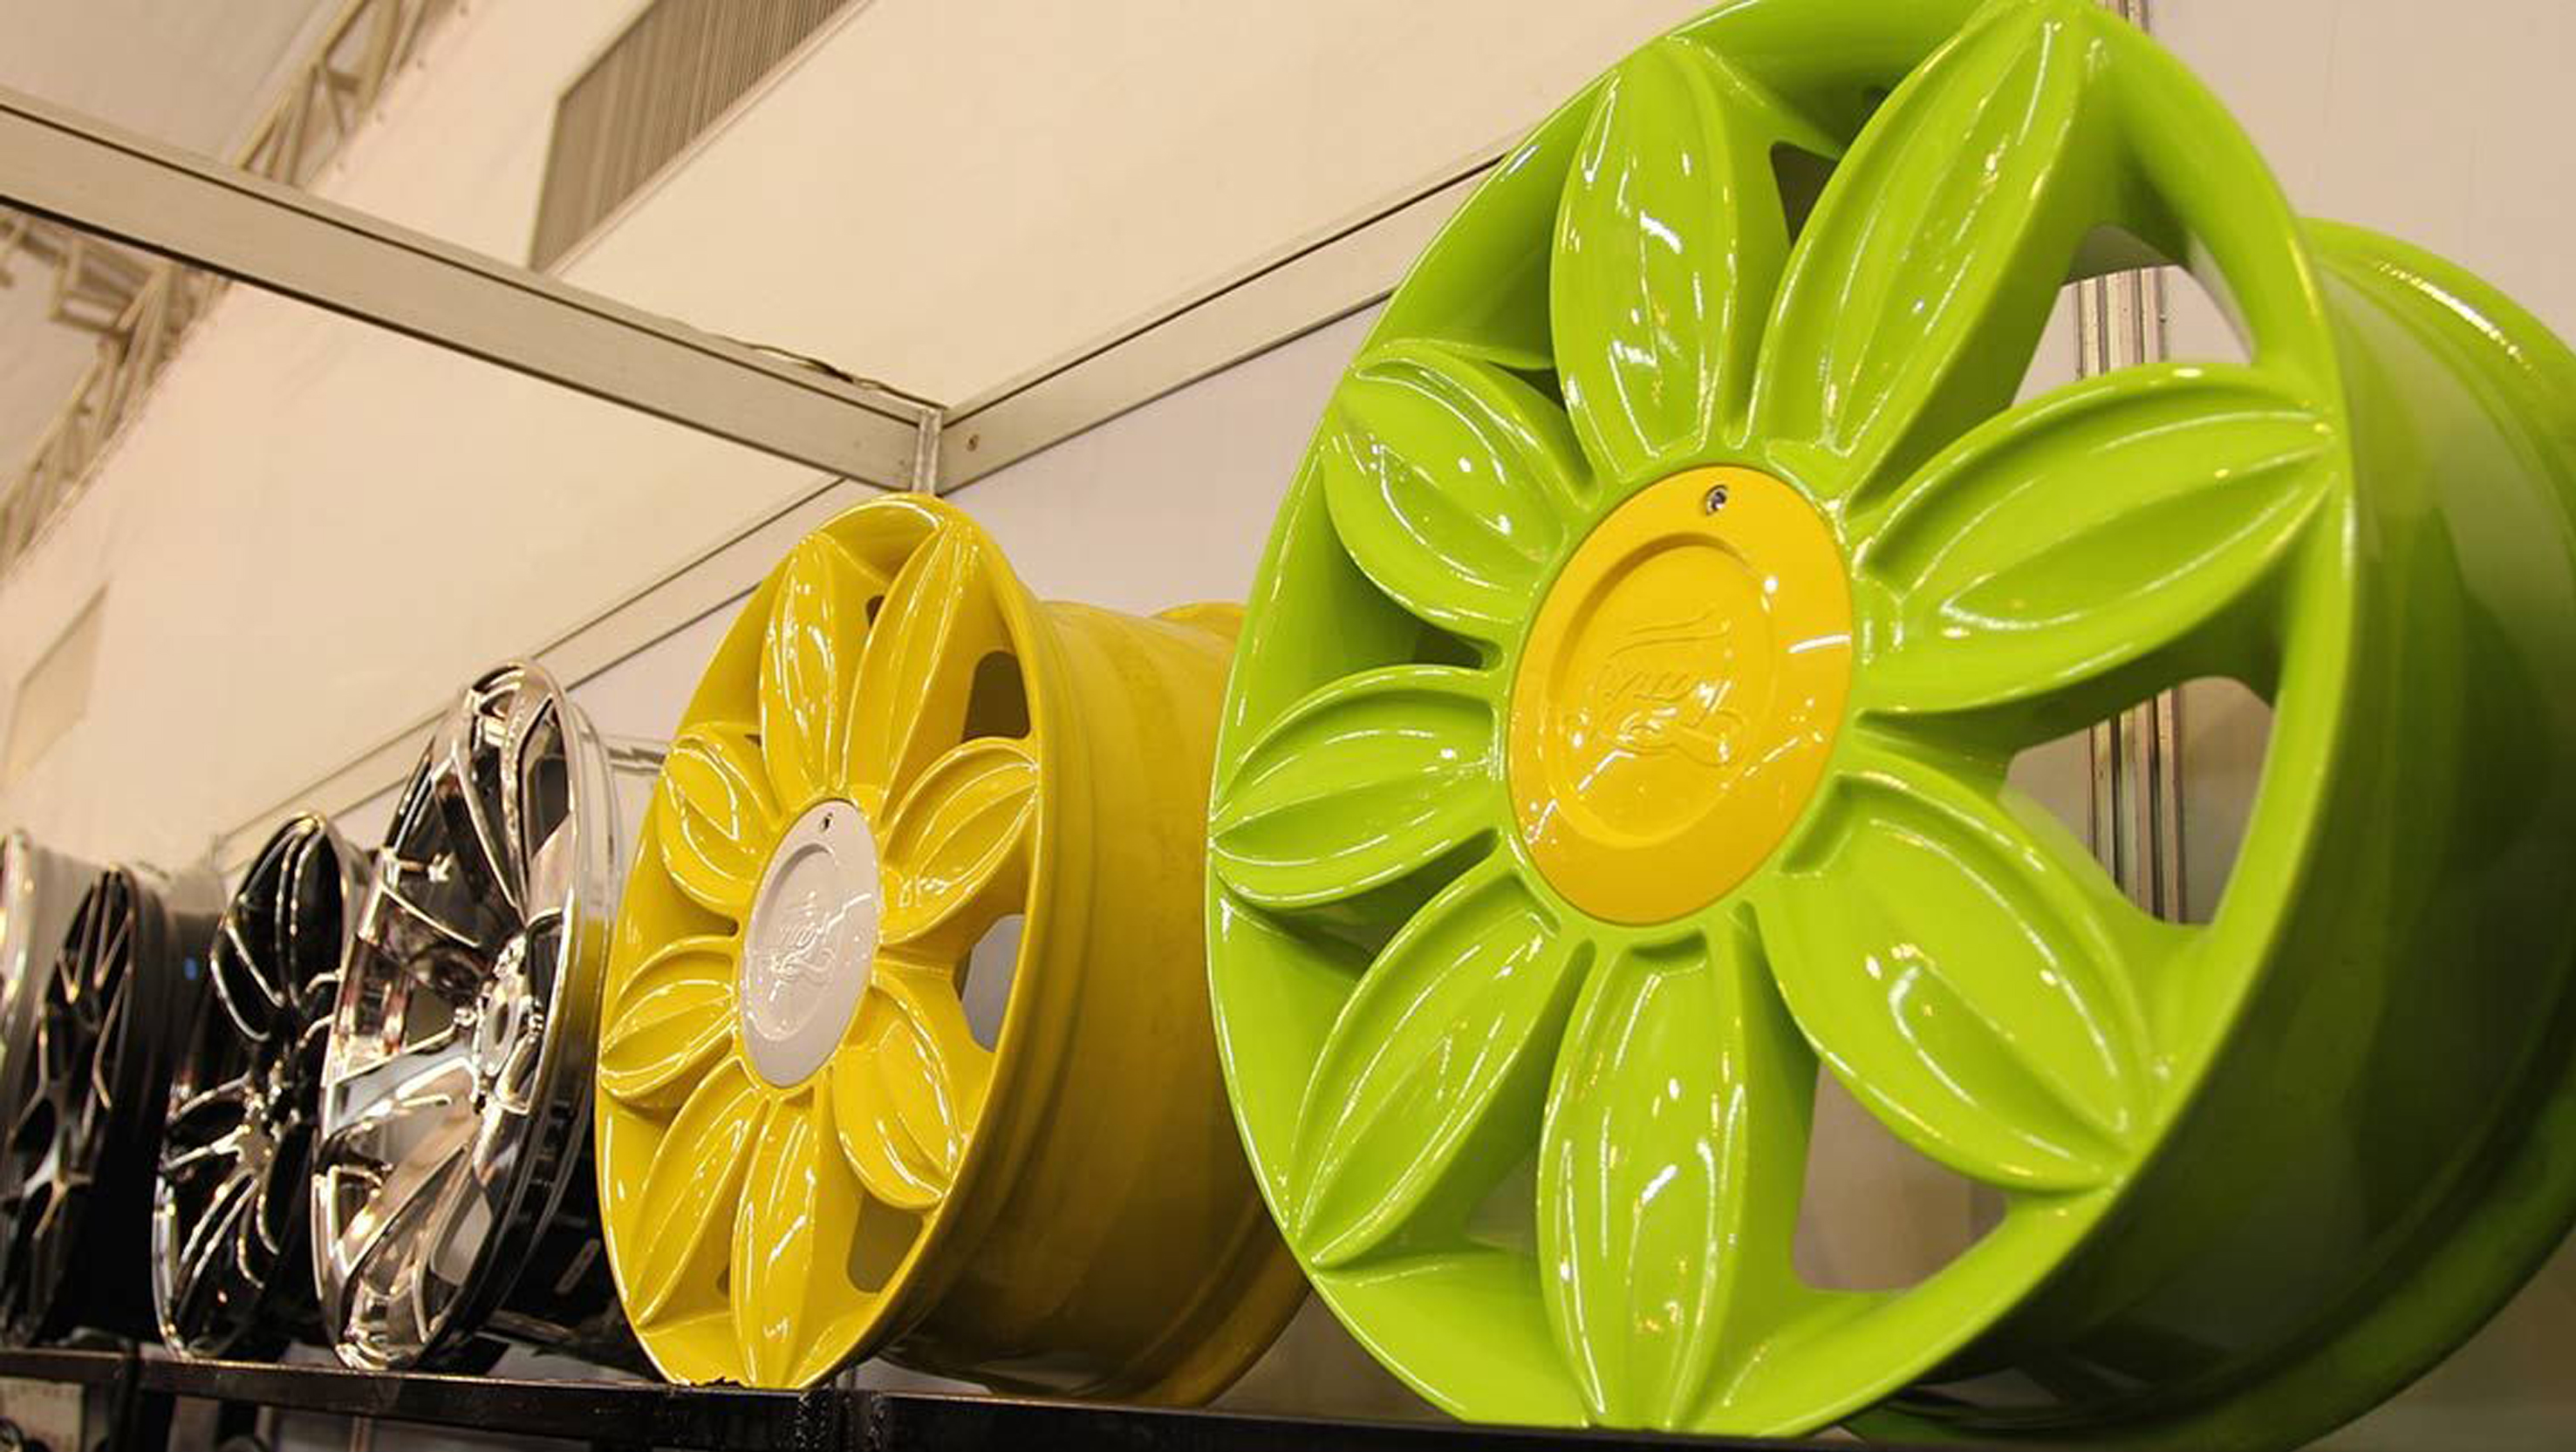 Super-sized and super bright alloy wheels on display at the bangkok auto show hybrid turbos